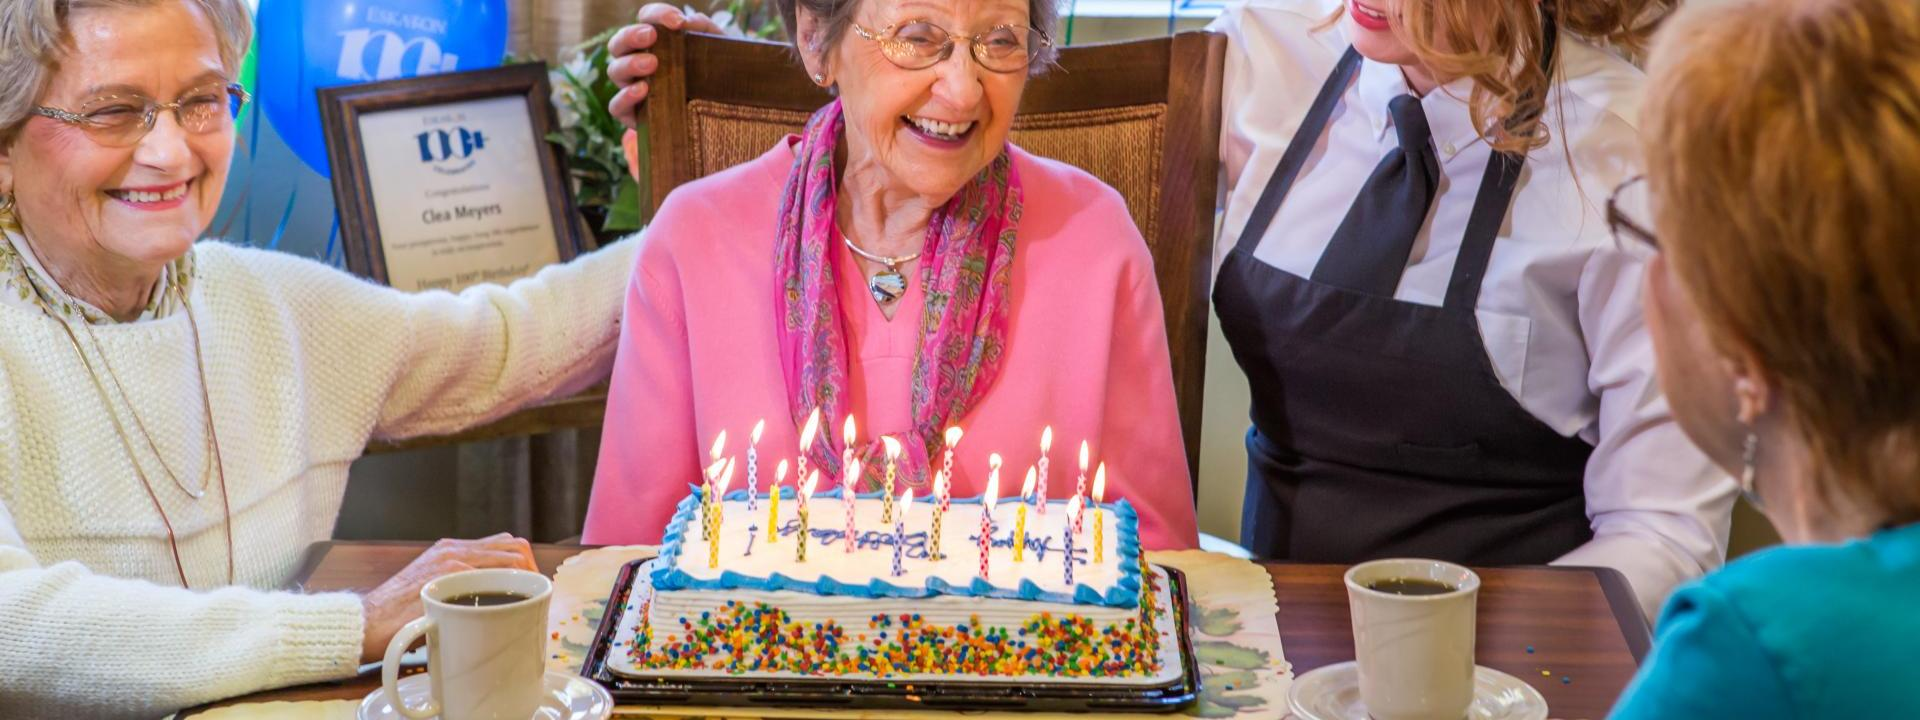 woman celebrating her 100th birthday with friends